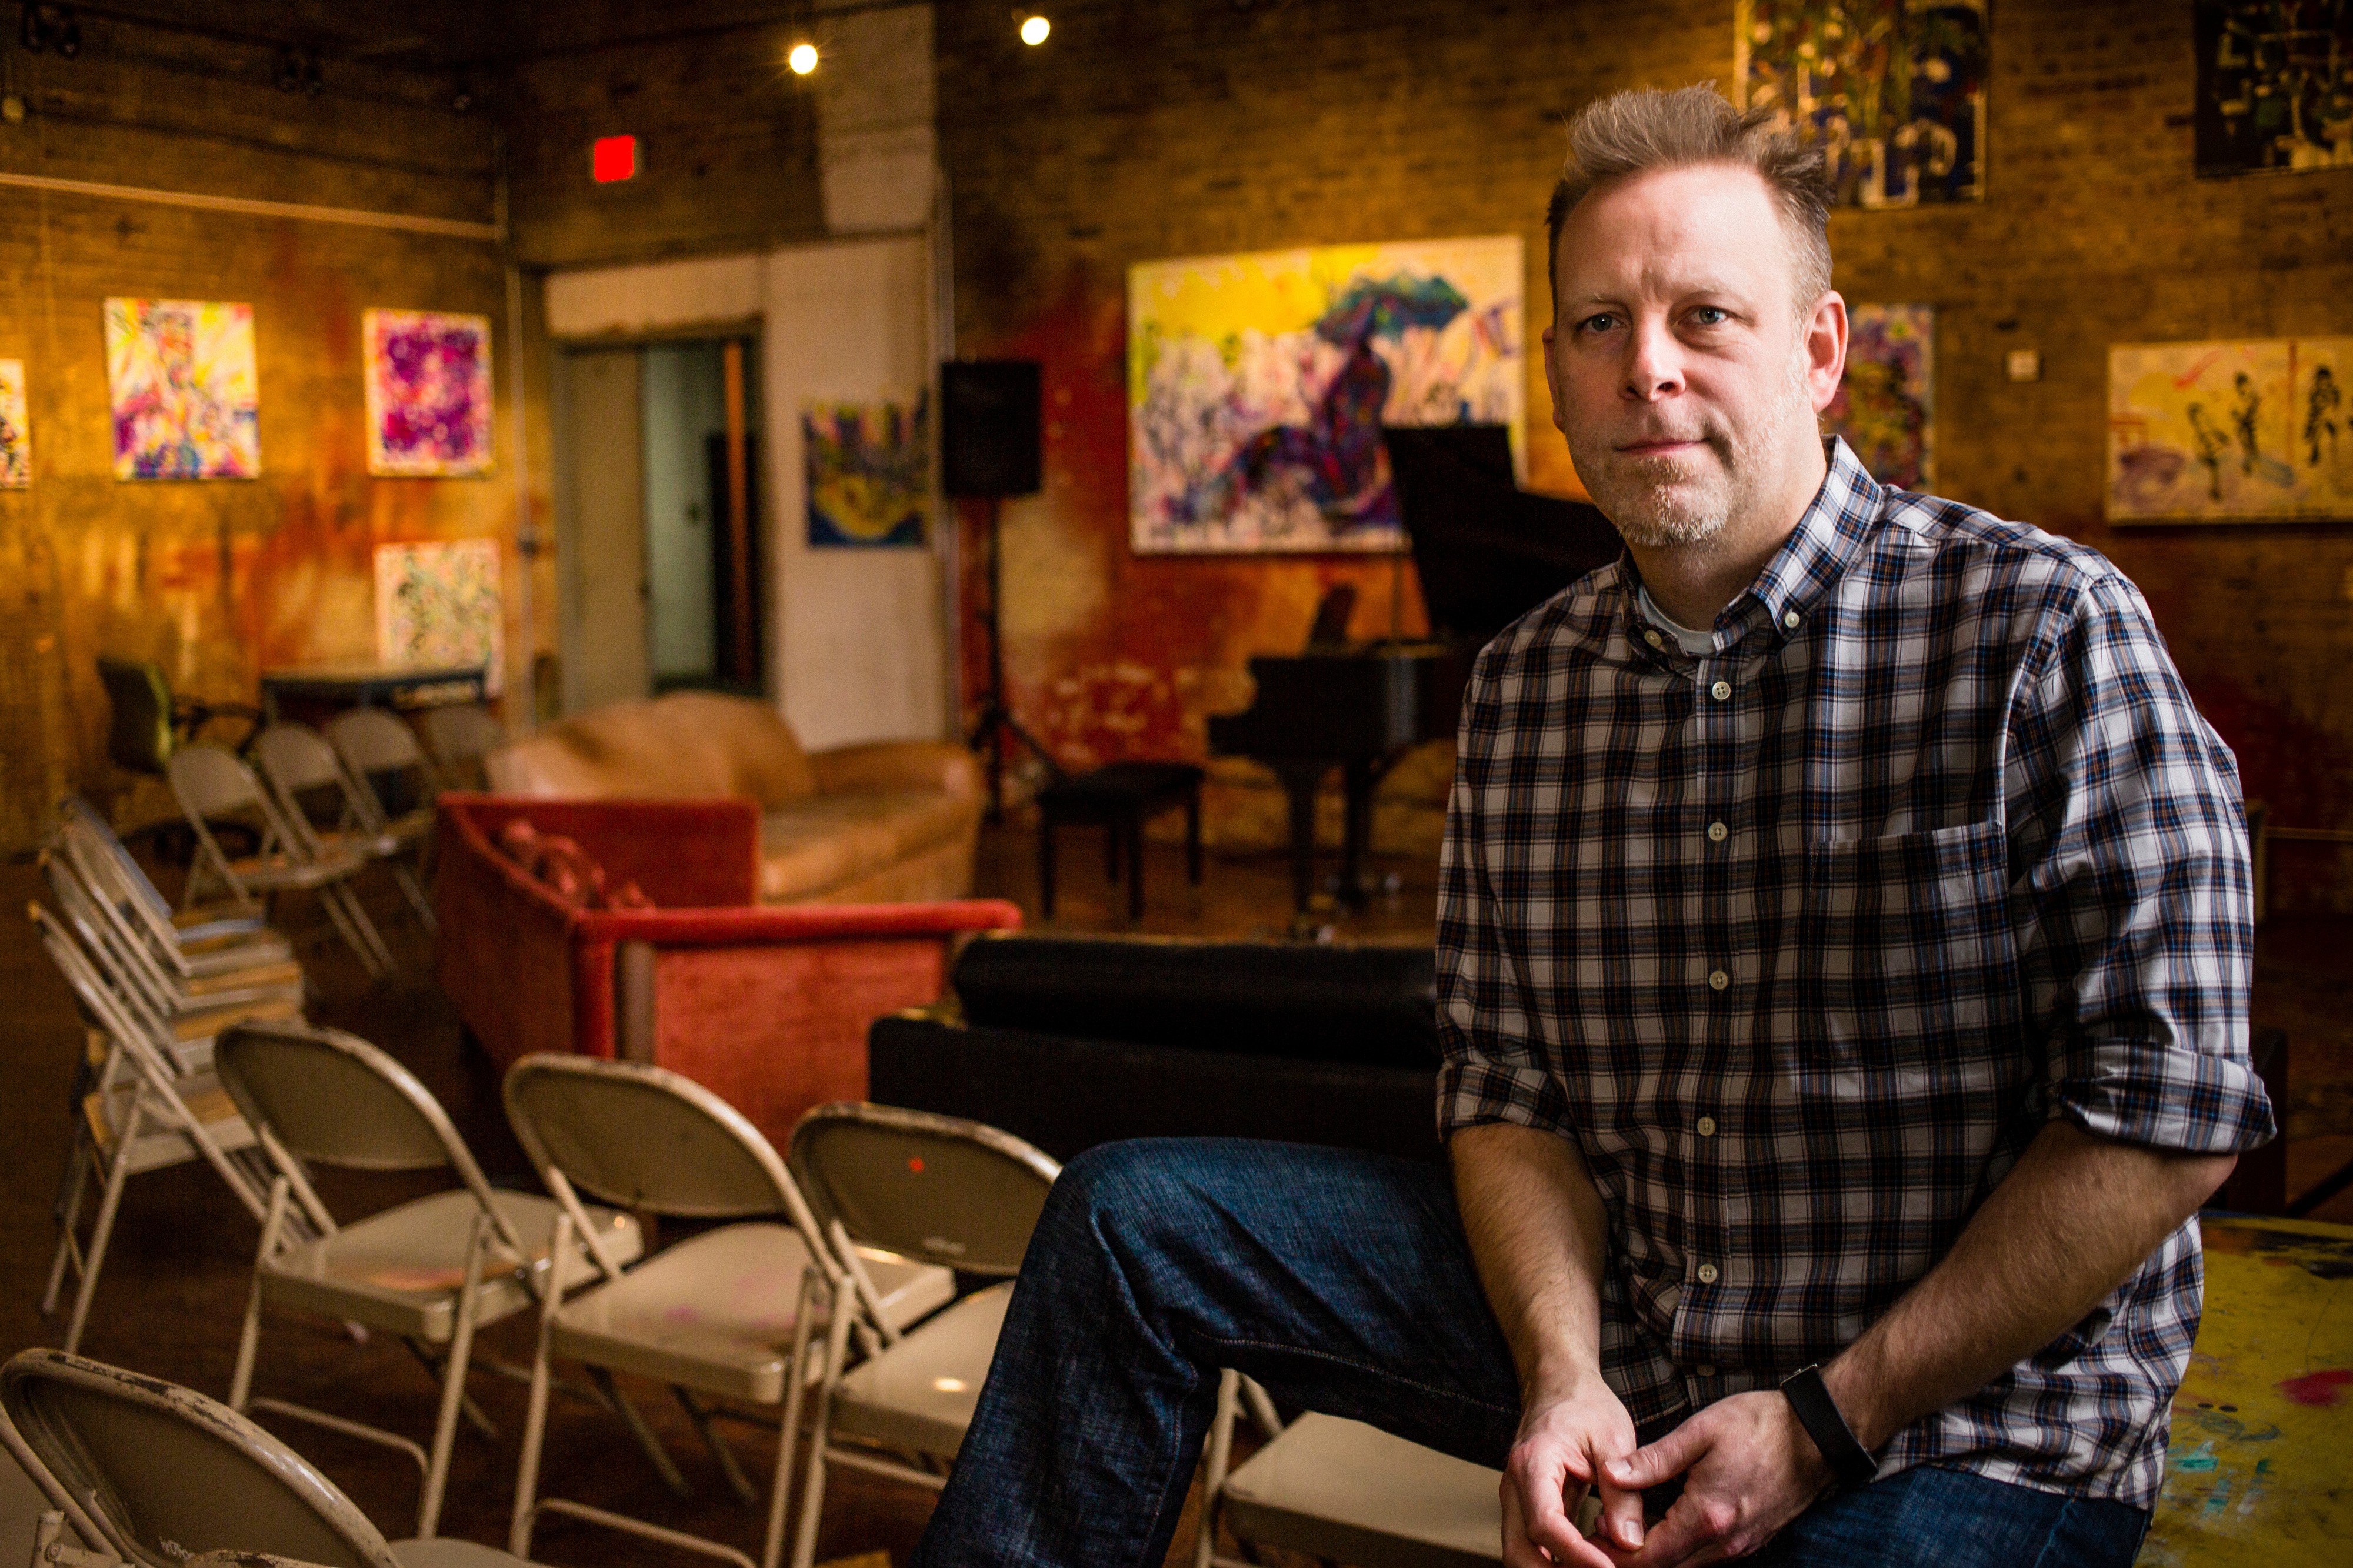 Chris Anderson, the operations manager of the Fulton Street Art Collective, Saturday, January 25, 2020.